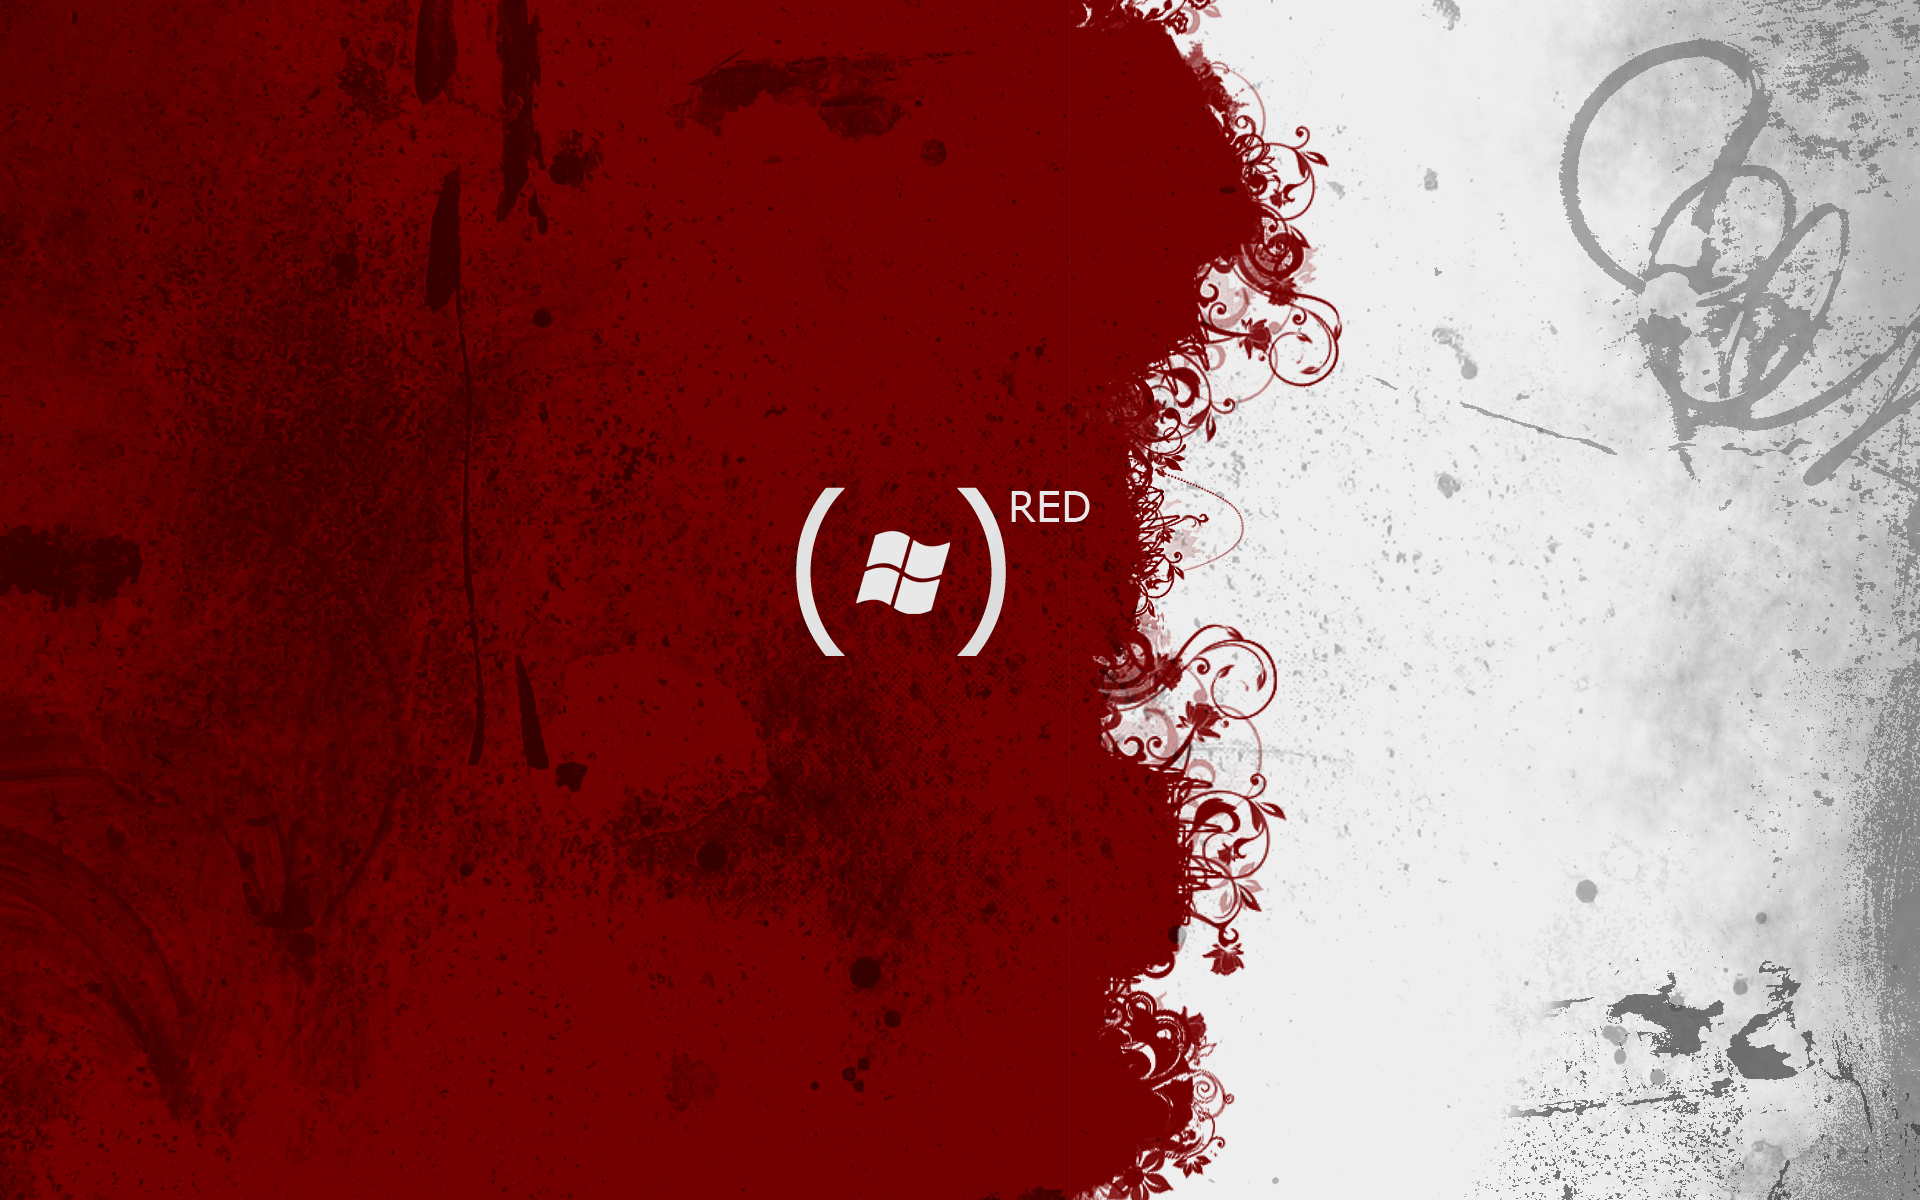 Alienware Animated Wallpaper Dell Red 1 Wallpapers Dell Red 1 Stock Photos